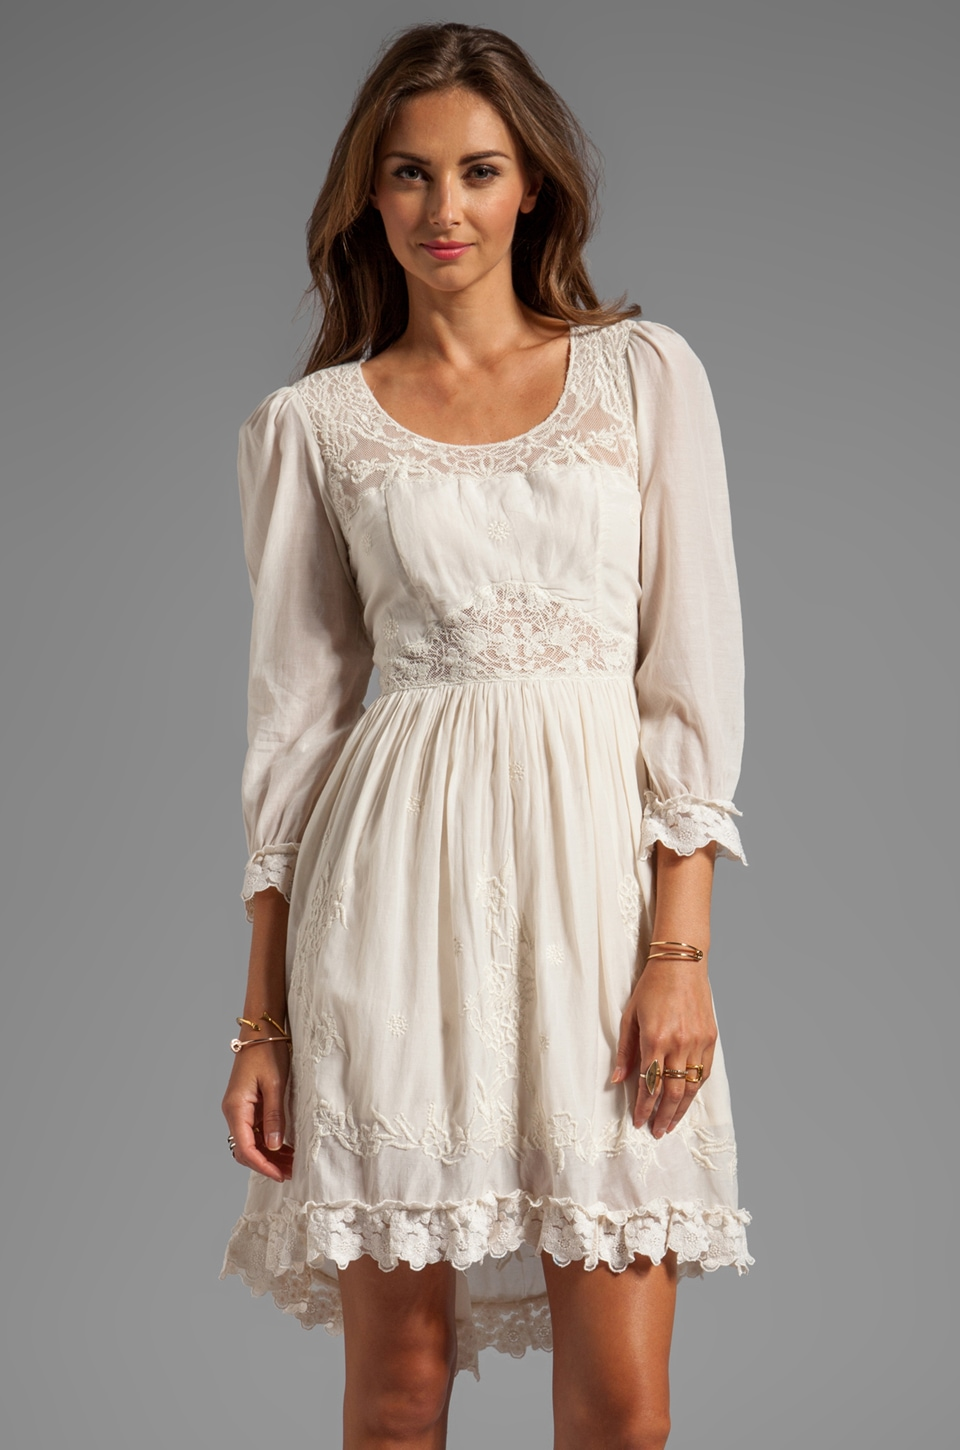 Free People Montana Dress in French Vanilla